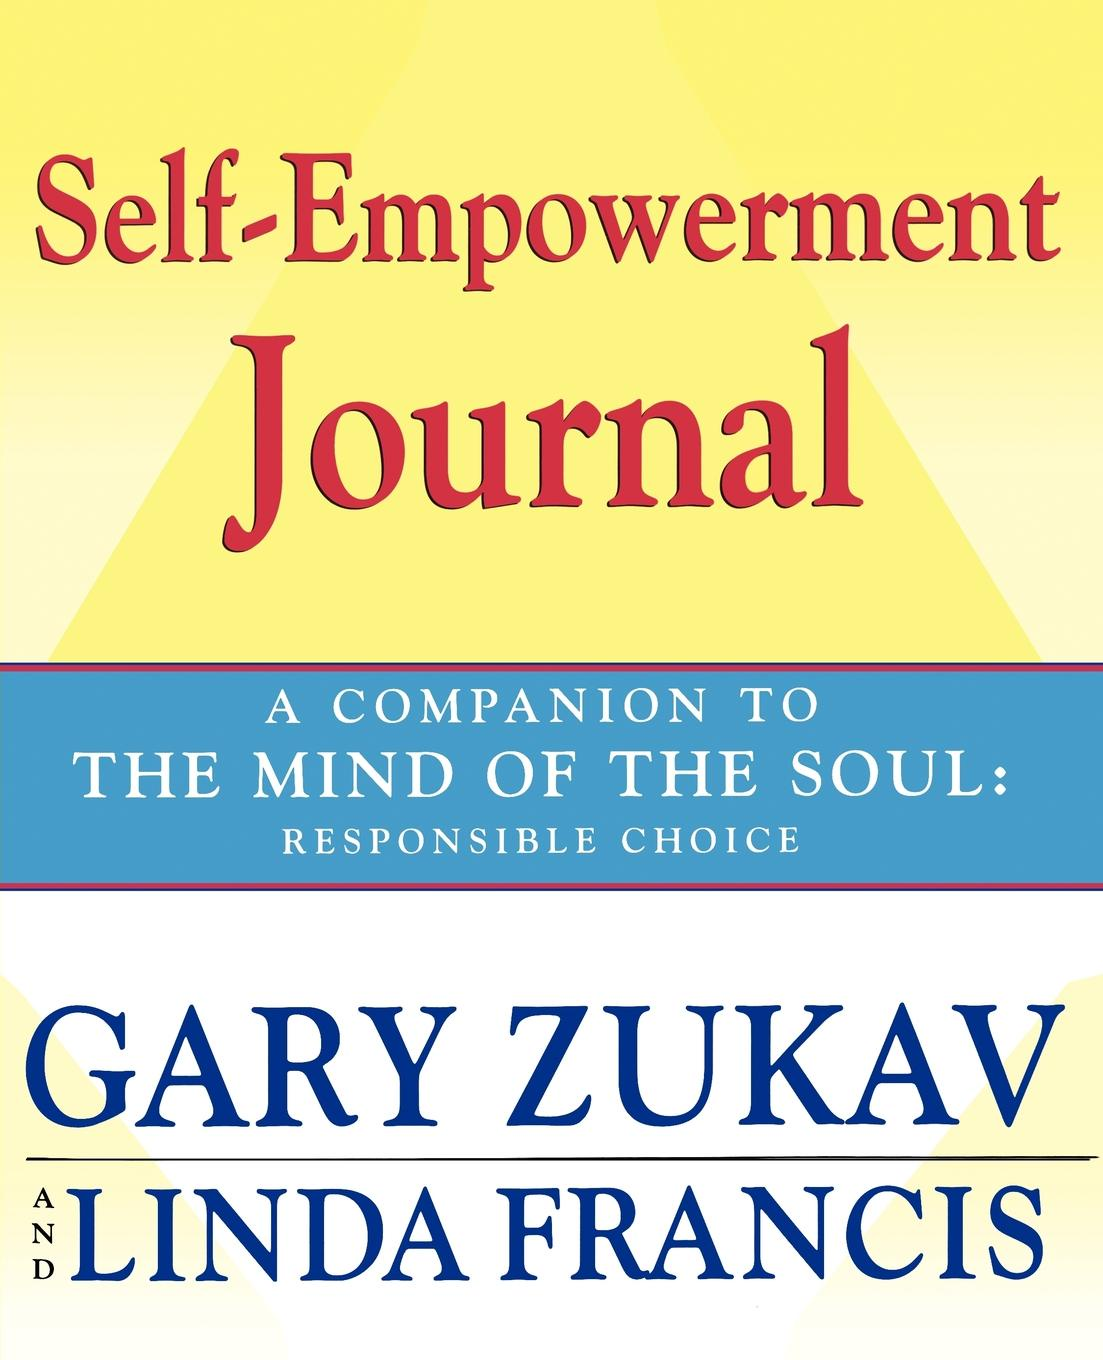 Gary Zukav, Linda Francis Self-Empowerment Journal. A Companion to the Mind of Soul: Responsible Choice